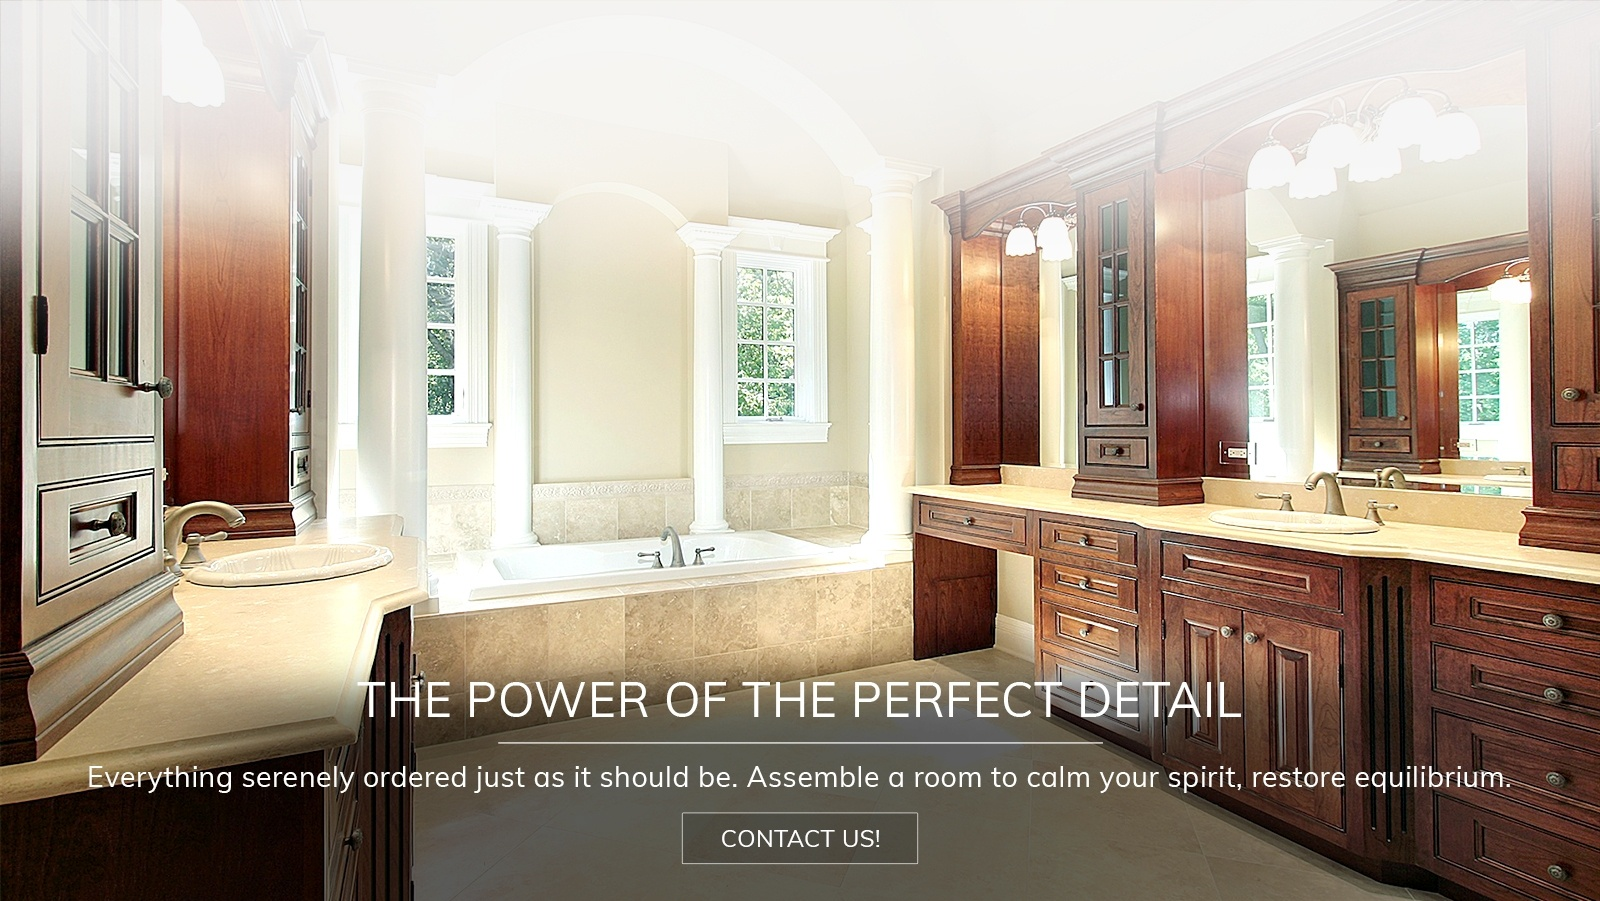 Bathroom Remodeling Contractor in Atlanta - Old Castle Home Design Center